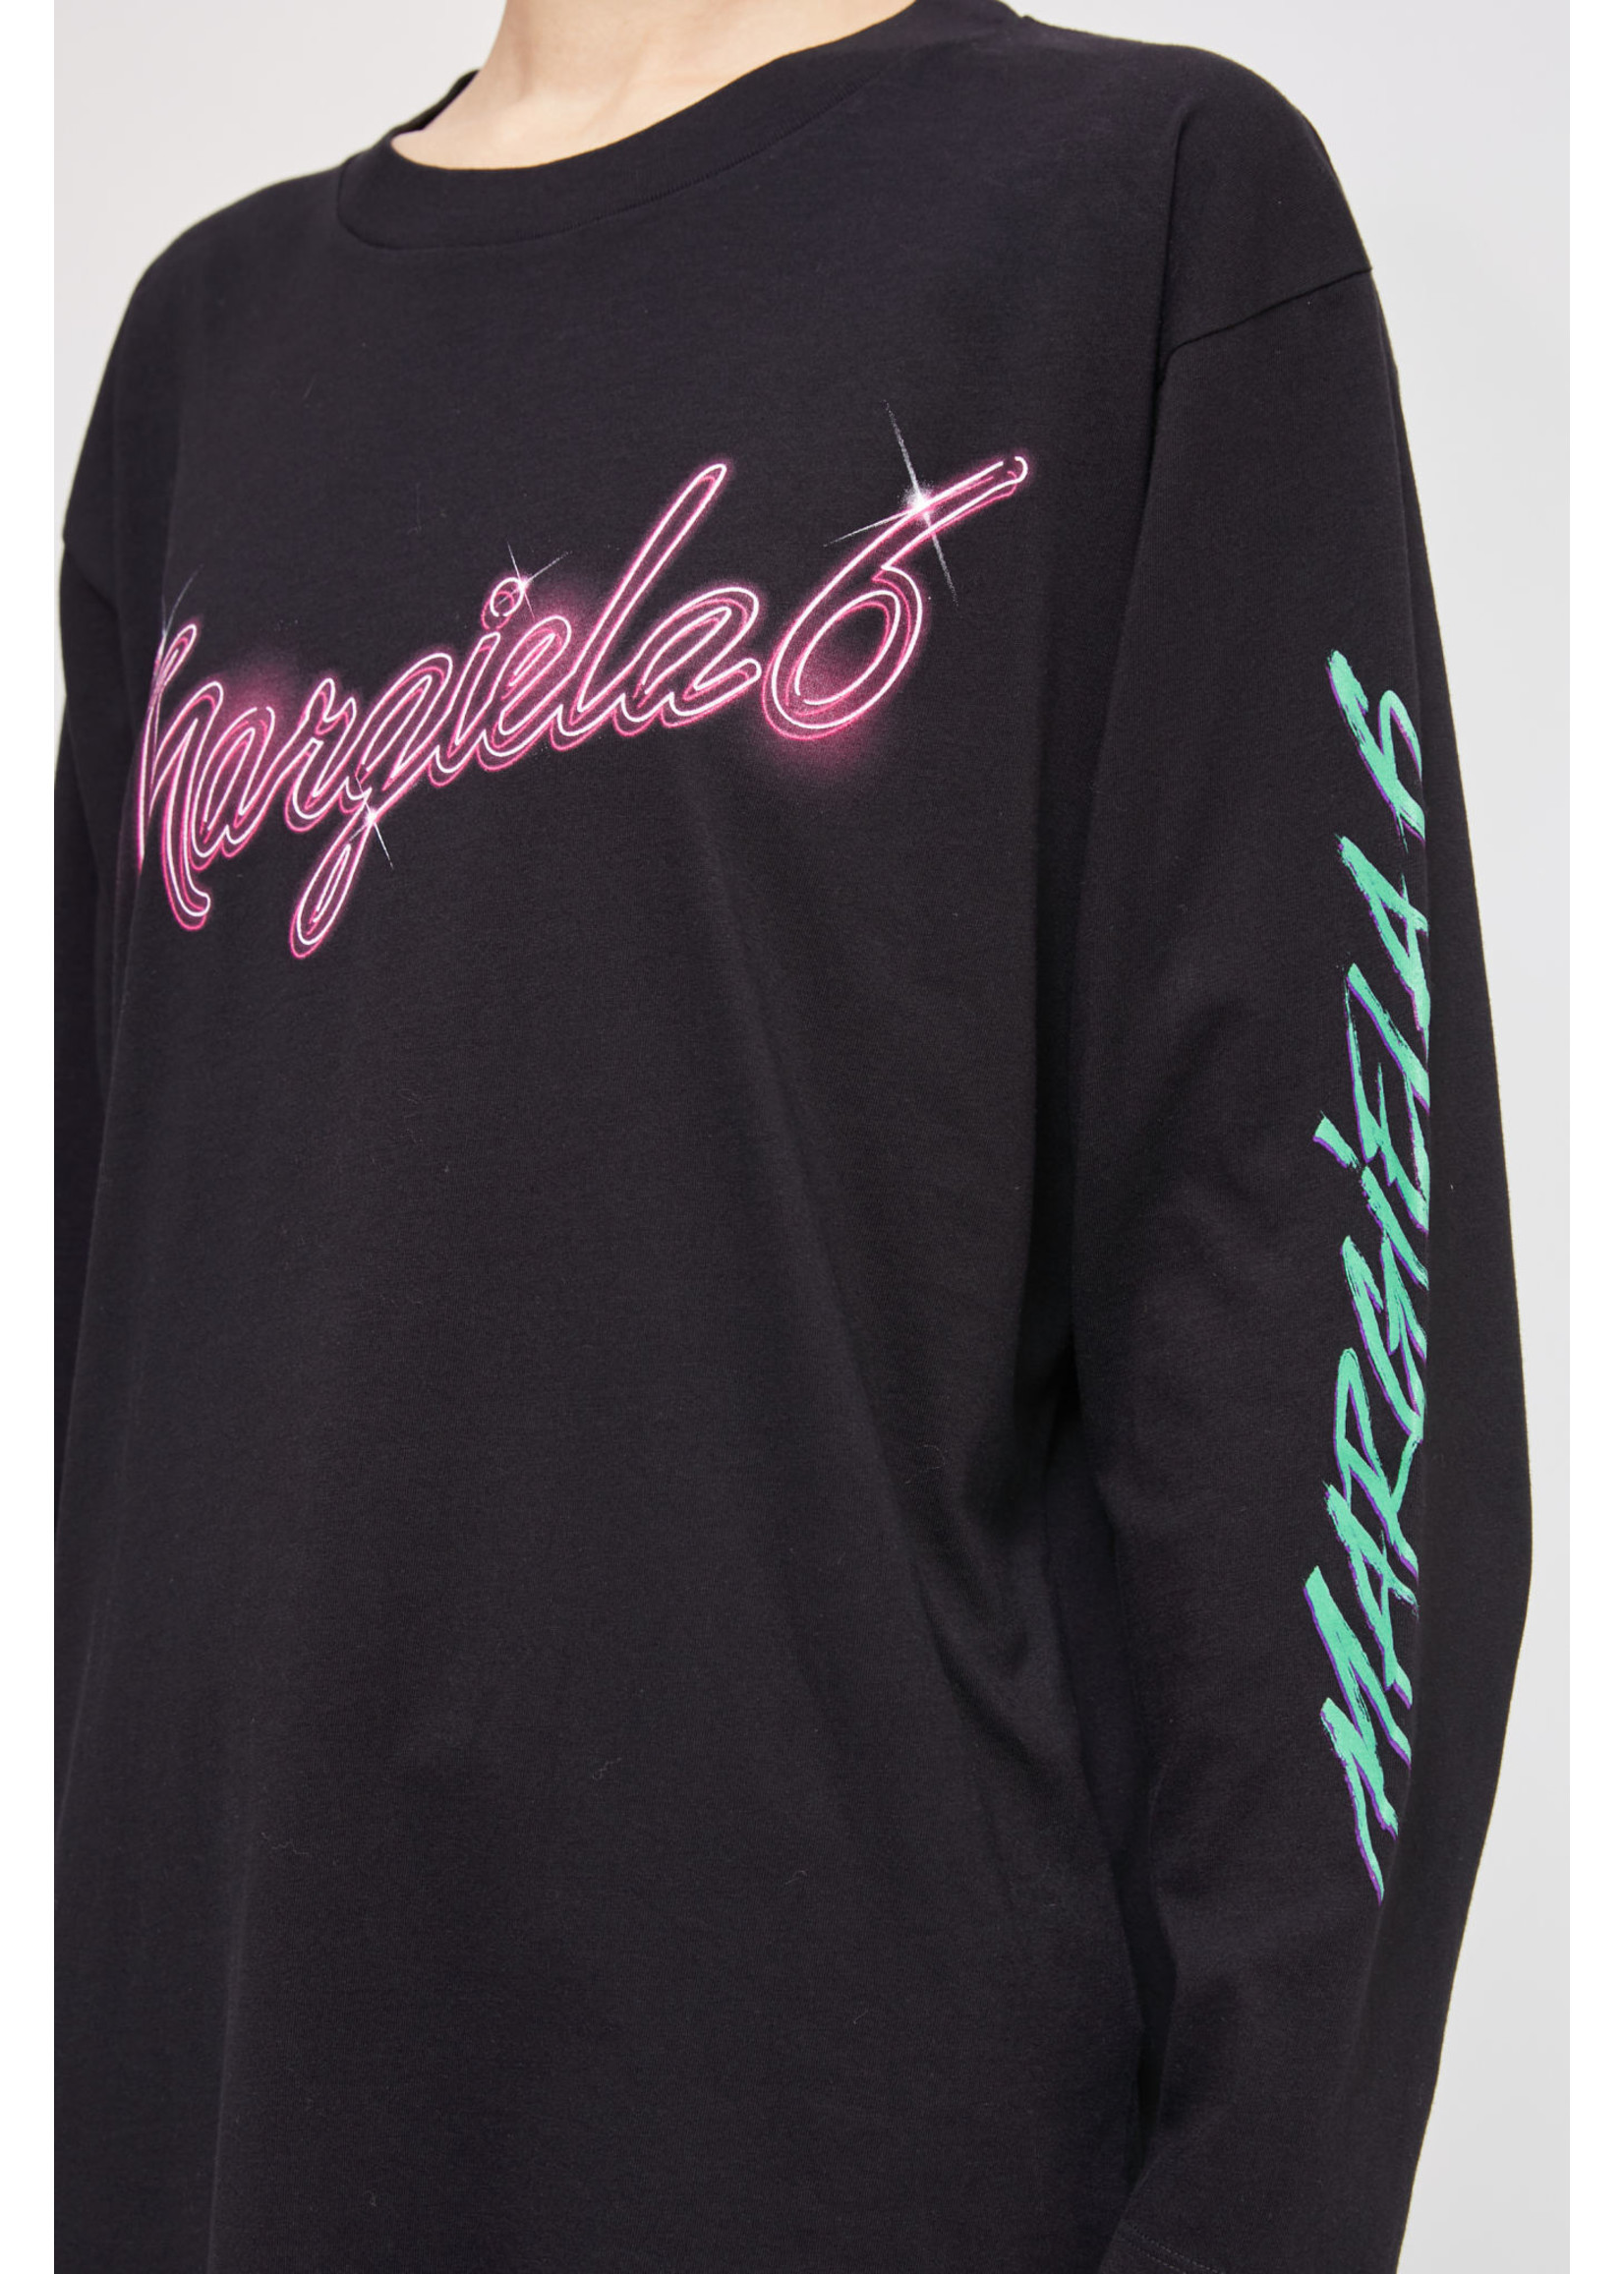 MM6 MAISON MARGIELA 6 Neon Logo Long Sleeved T-shirt